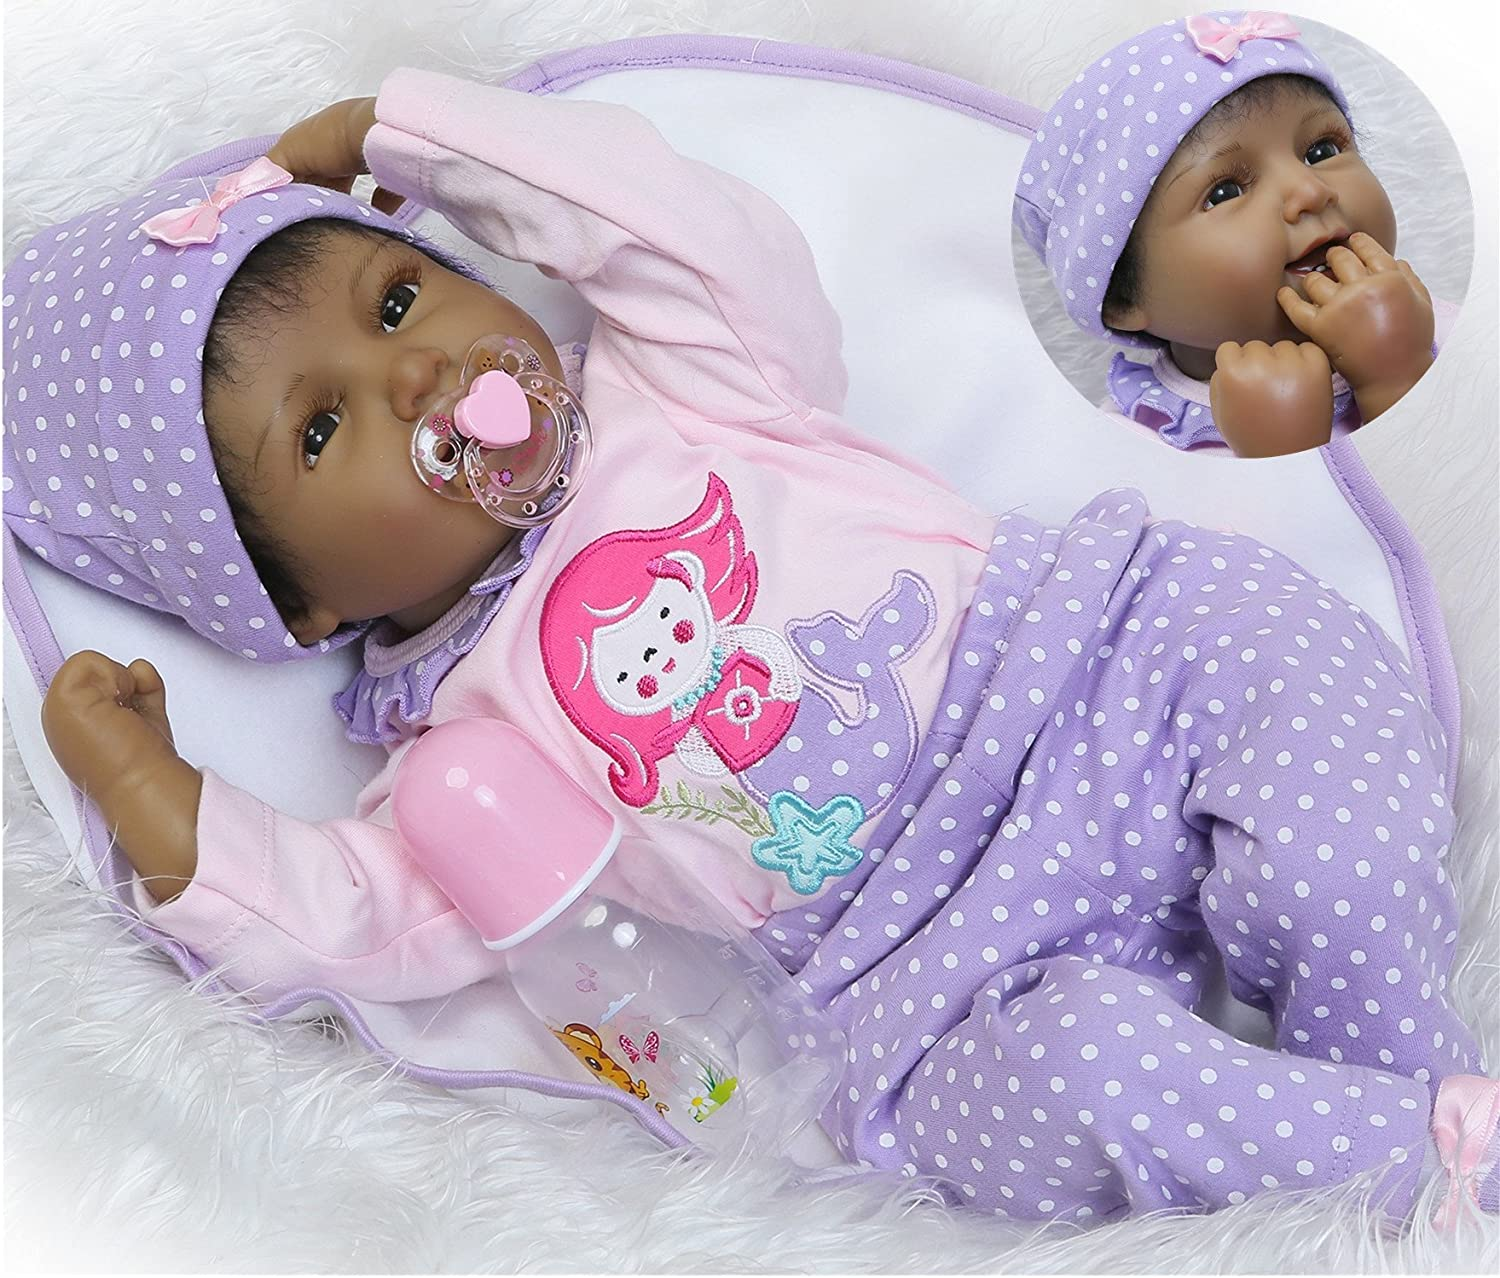 African American Baby Reborn Dolls Cute Silicone Black Newborns Look Real 22/""